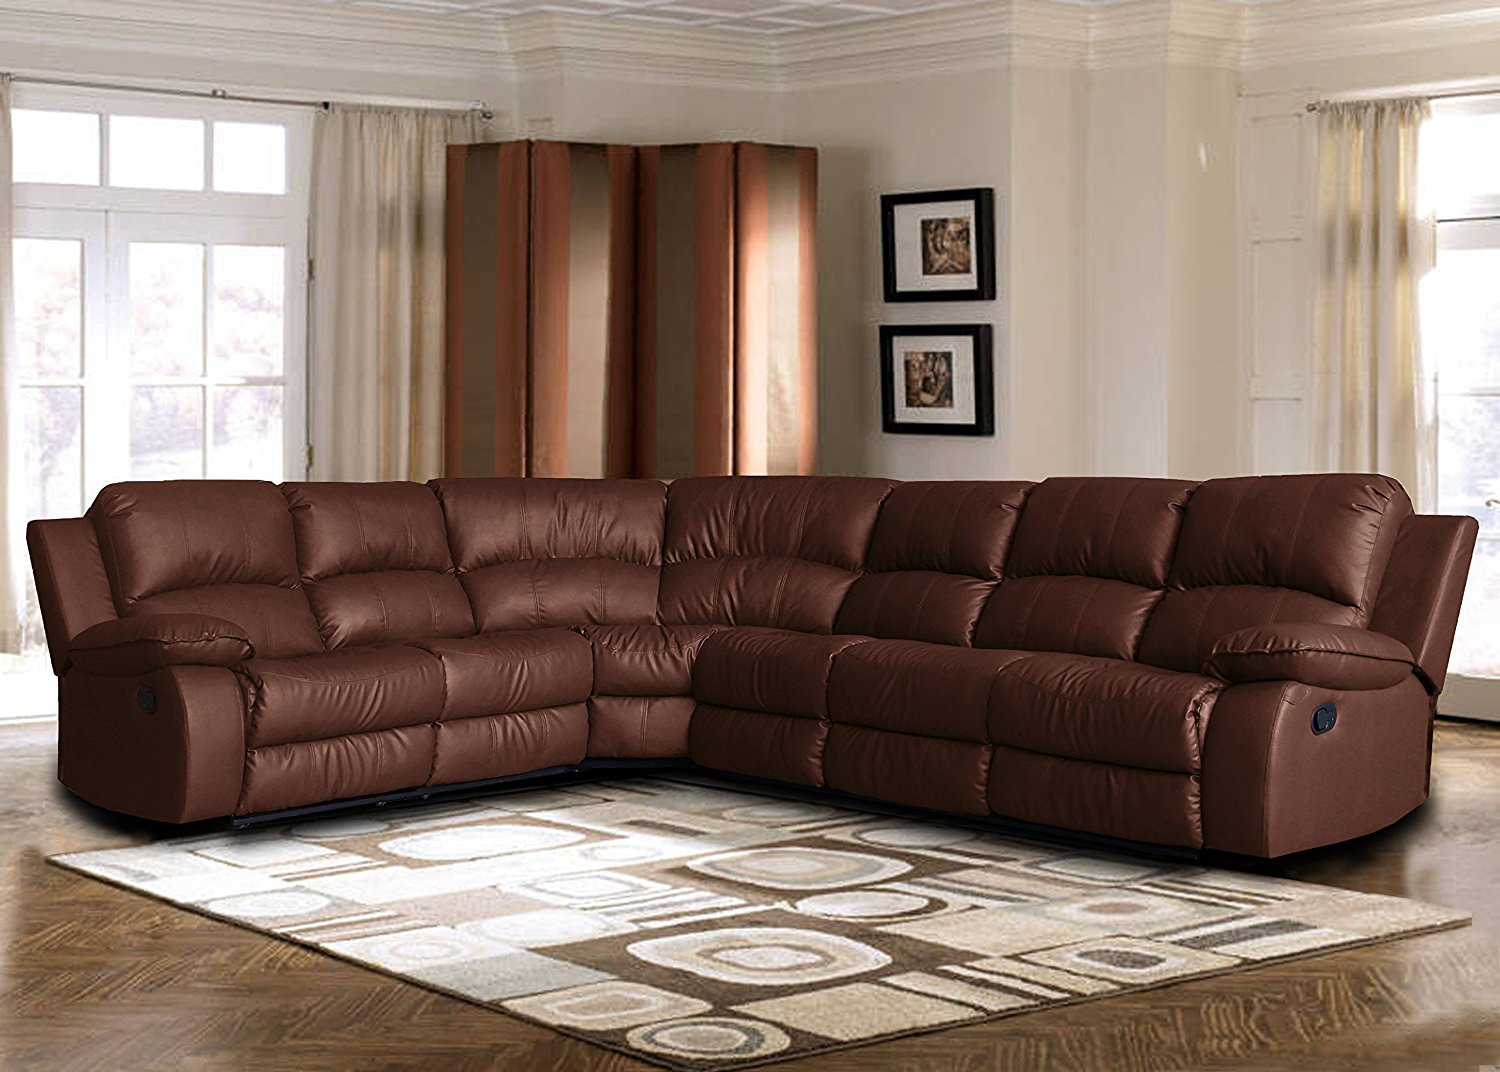 Extra Leather Reclining Corner Sectional Sofa for